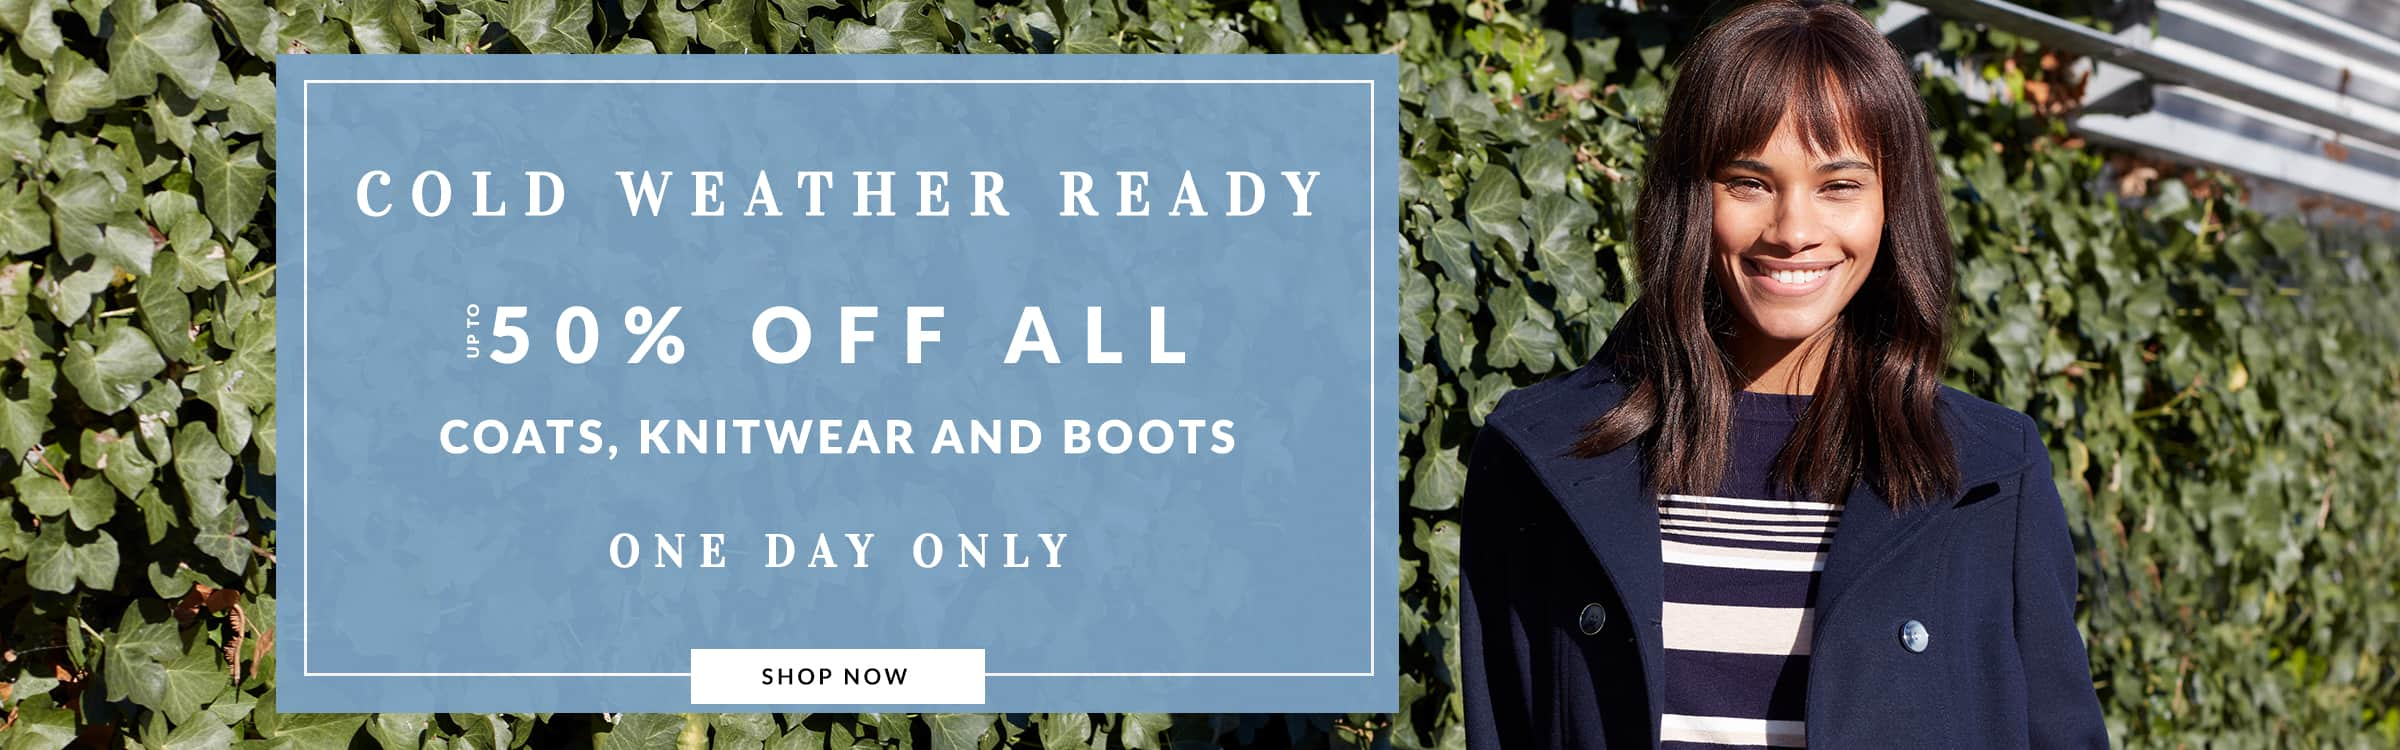 Wallis: Sale up to 50% off all coats, knitwear and boots